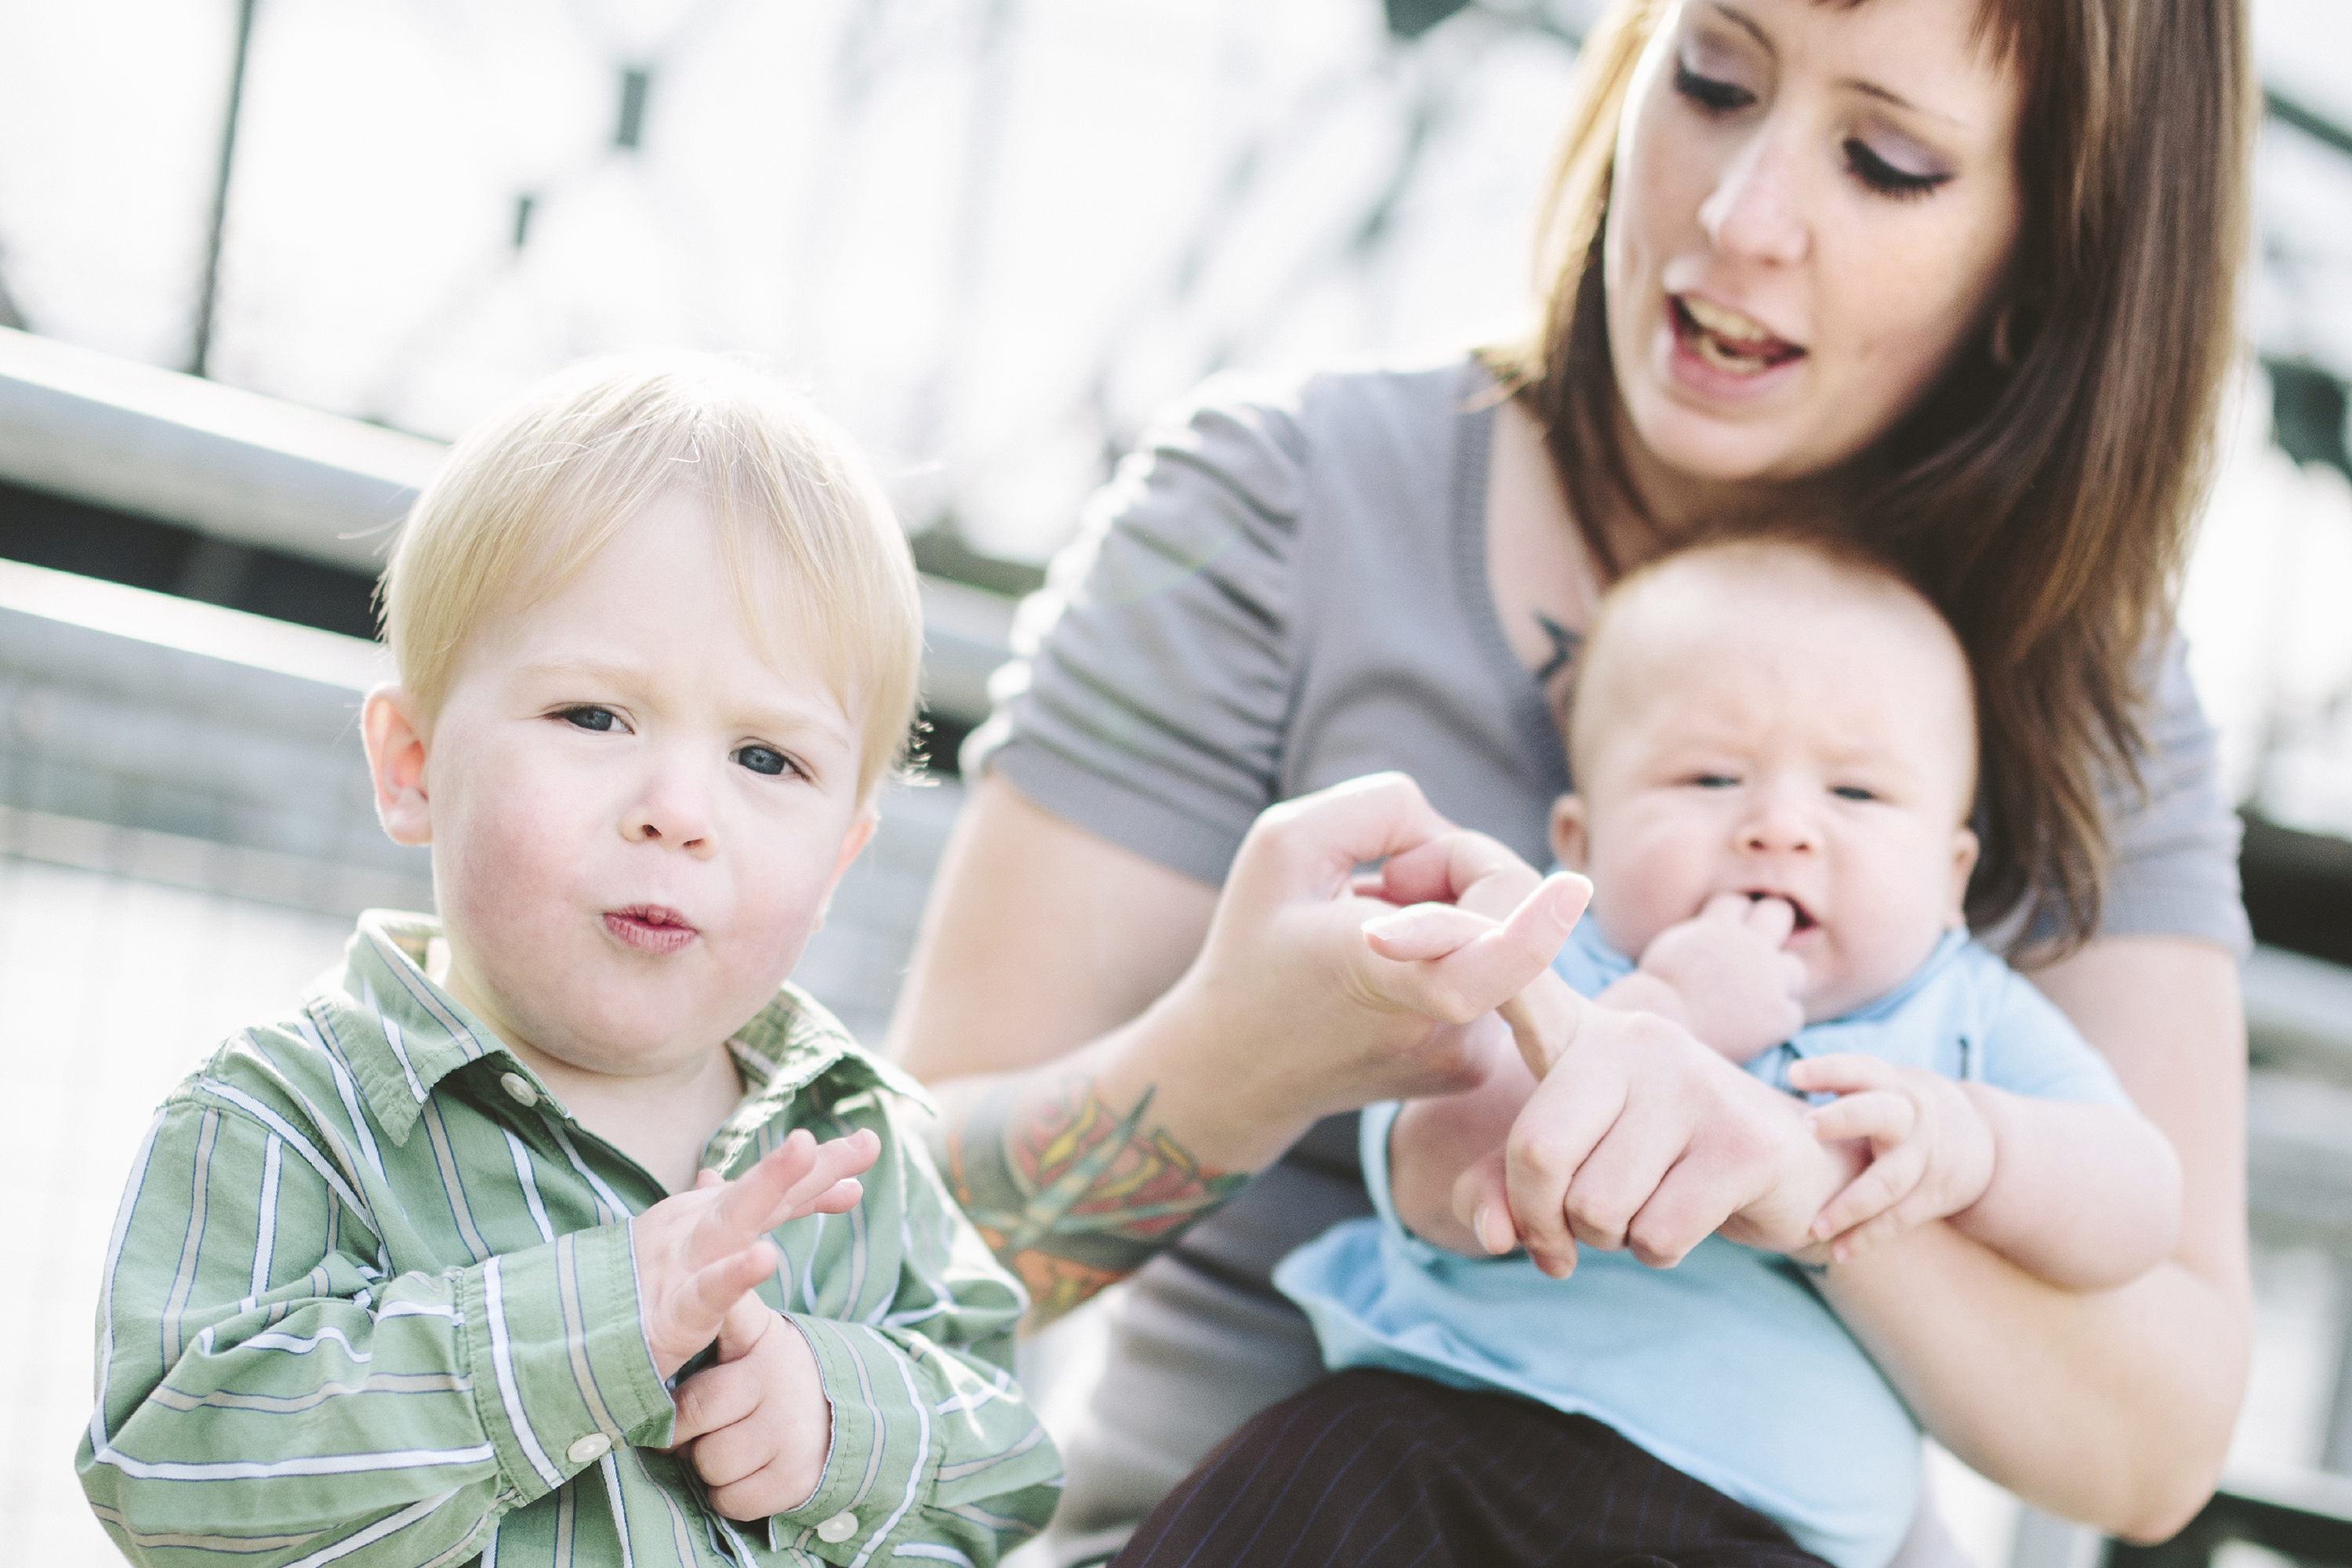 A parent using sign language with a young child. (iStock Photo)